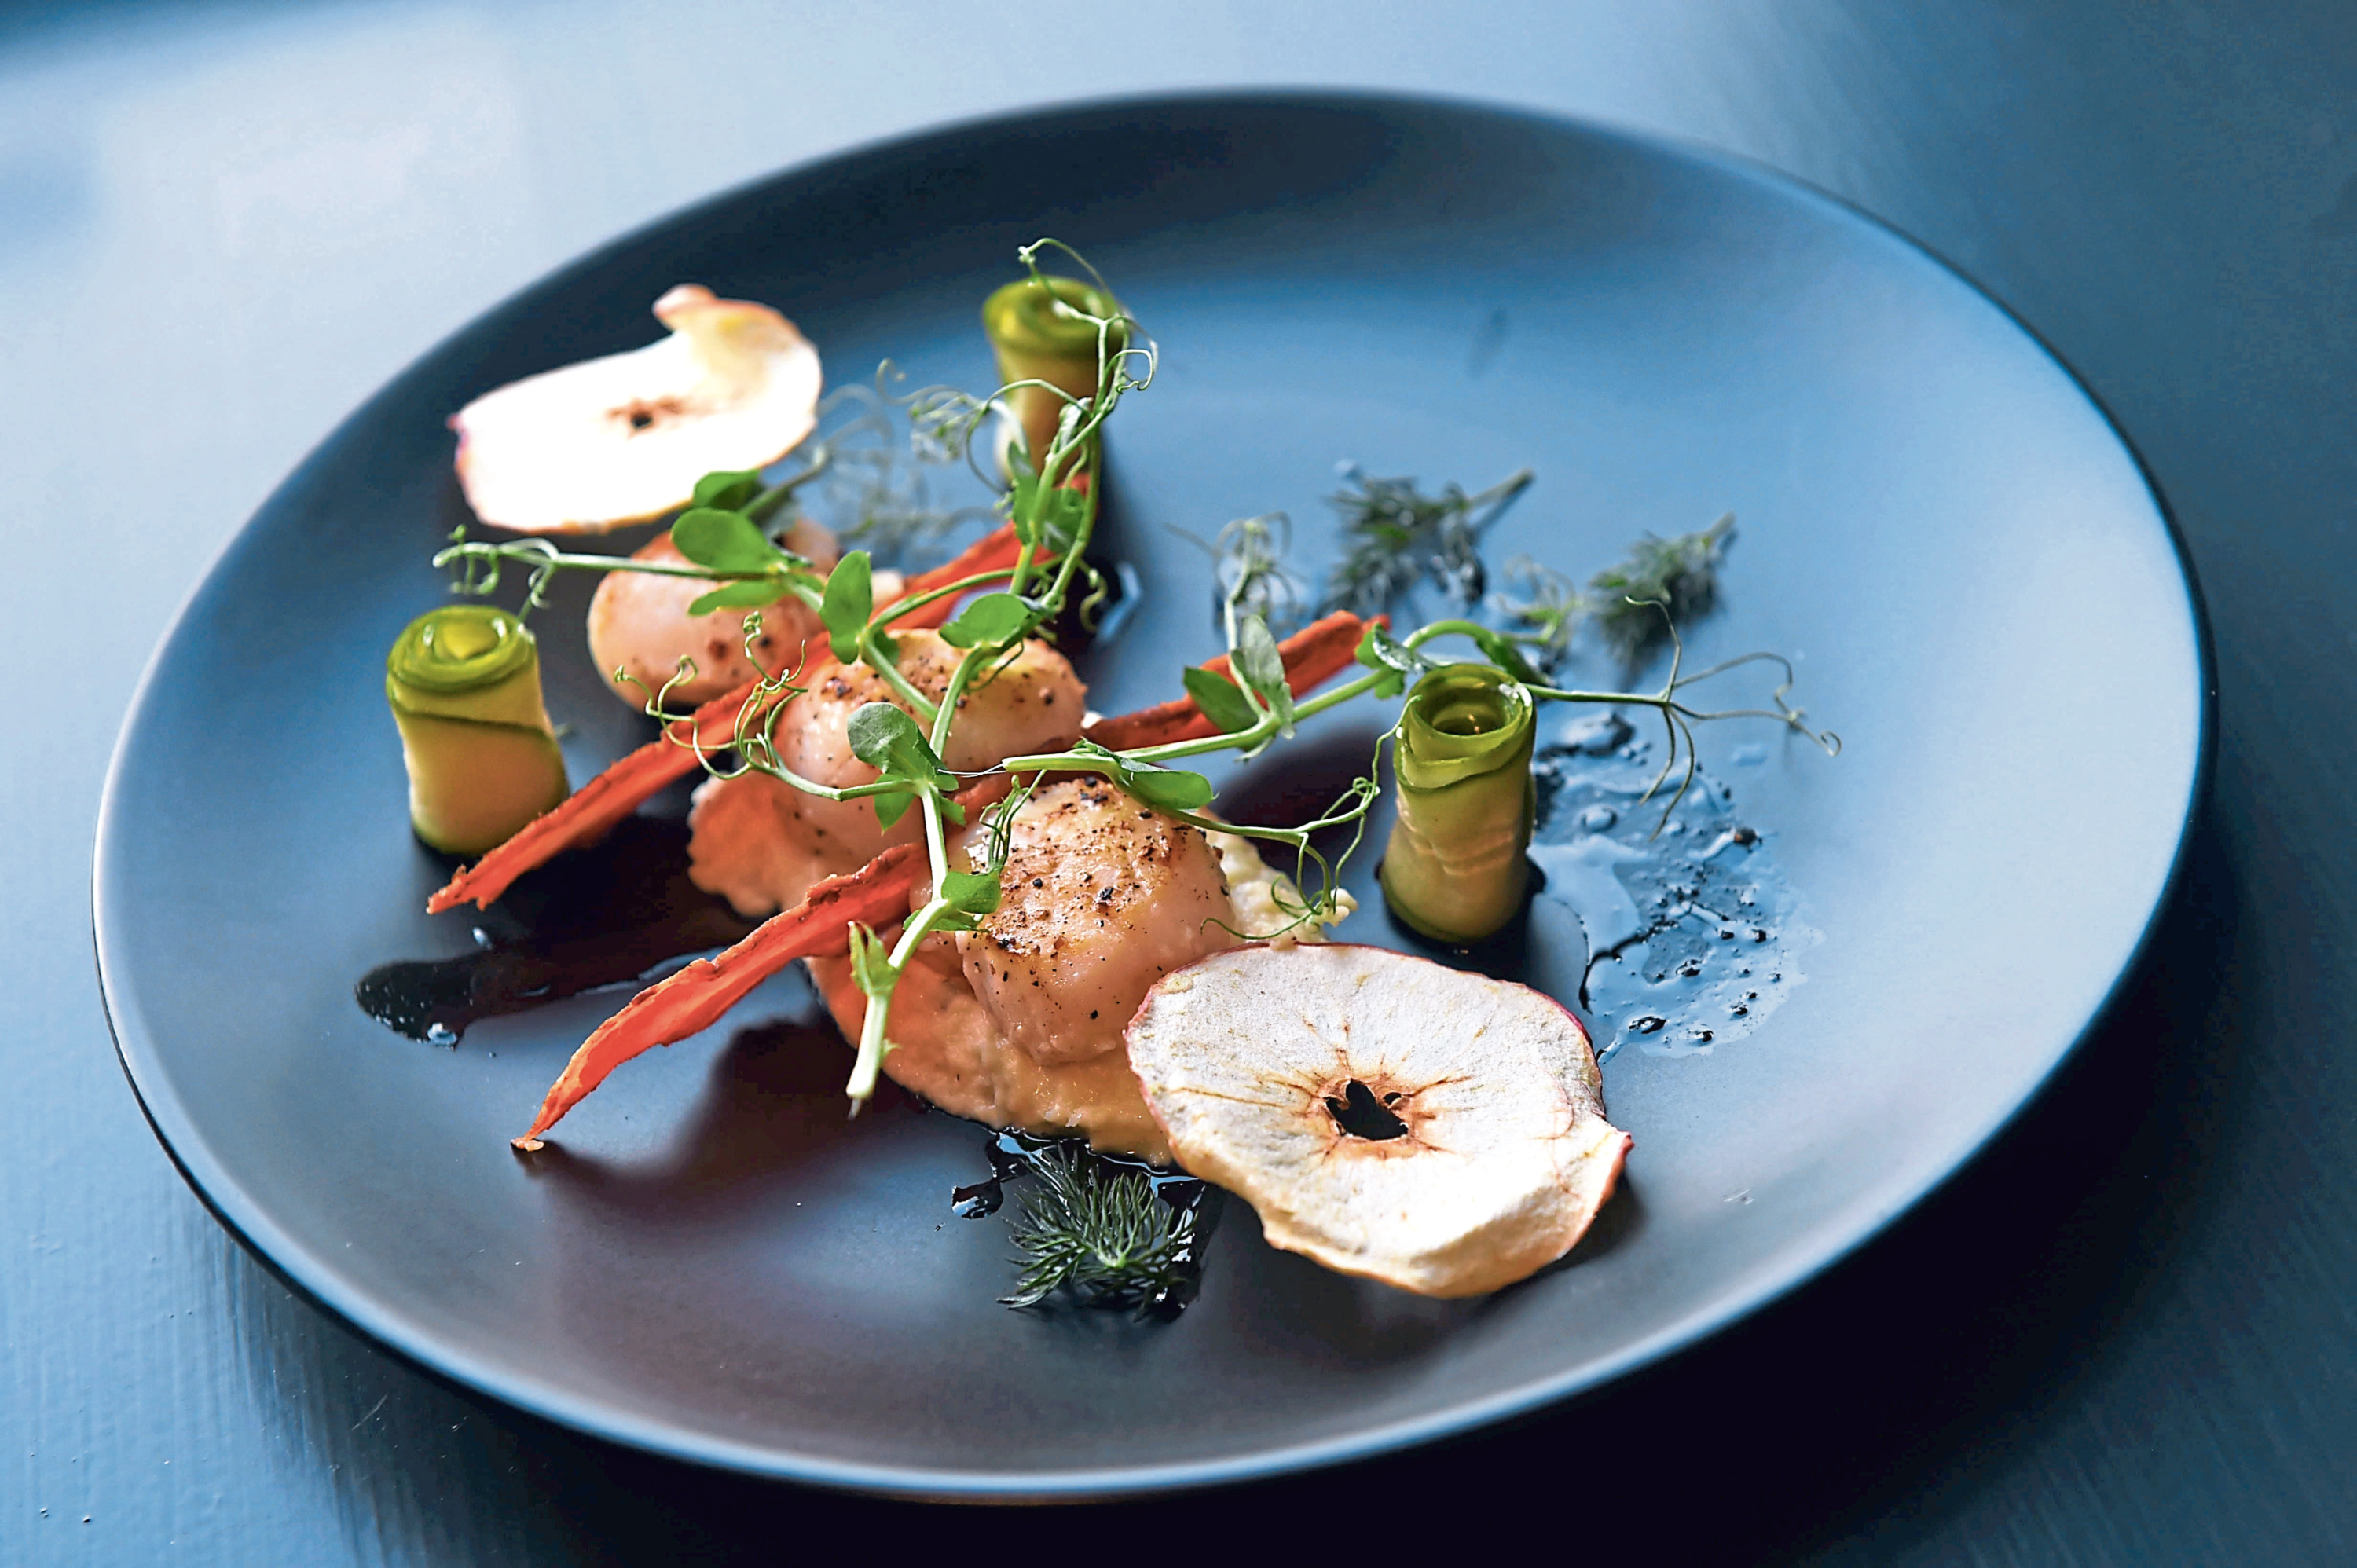 How to make Lost In Food's pan fried scallops with celeriac